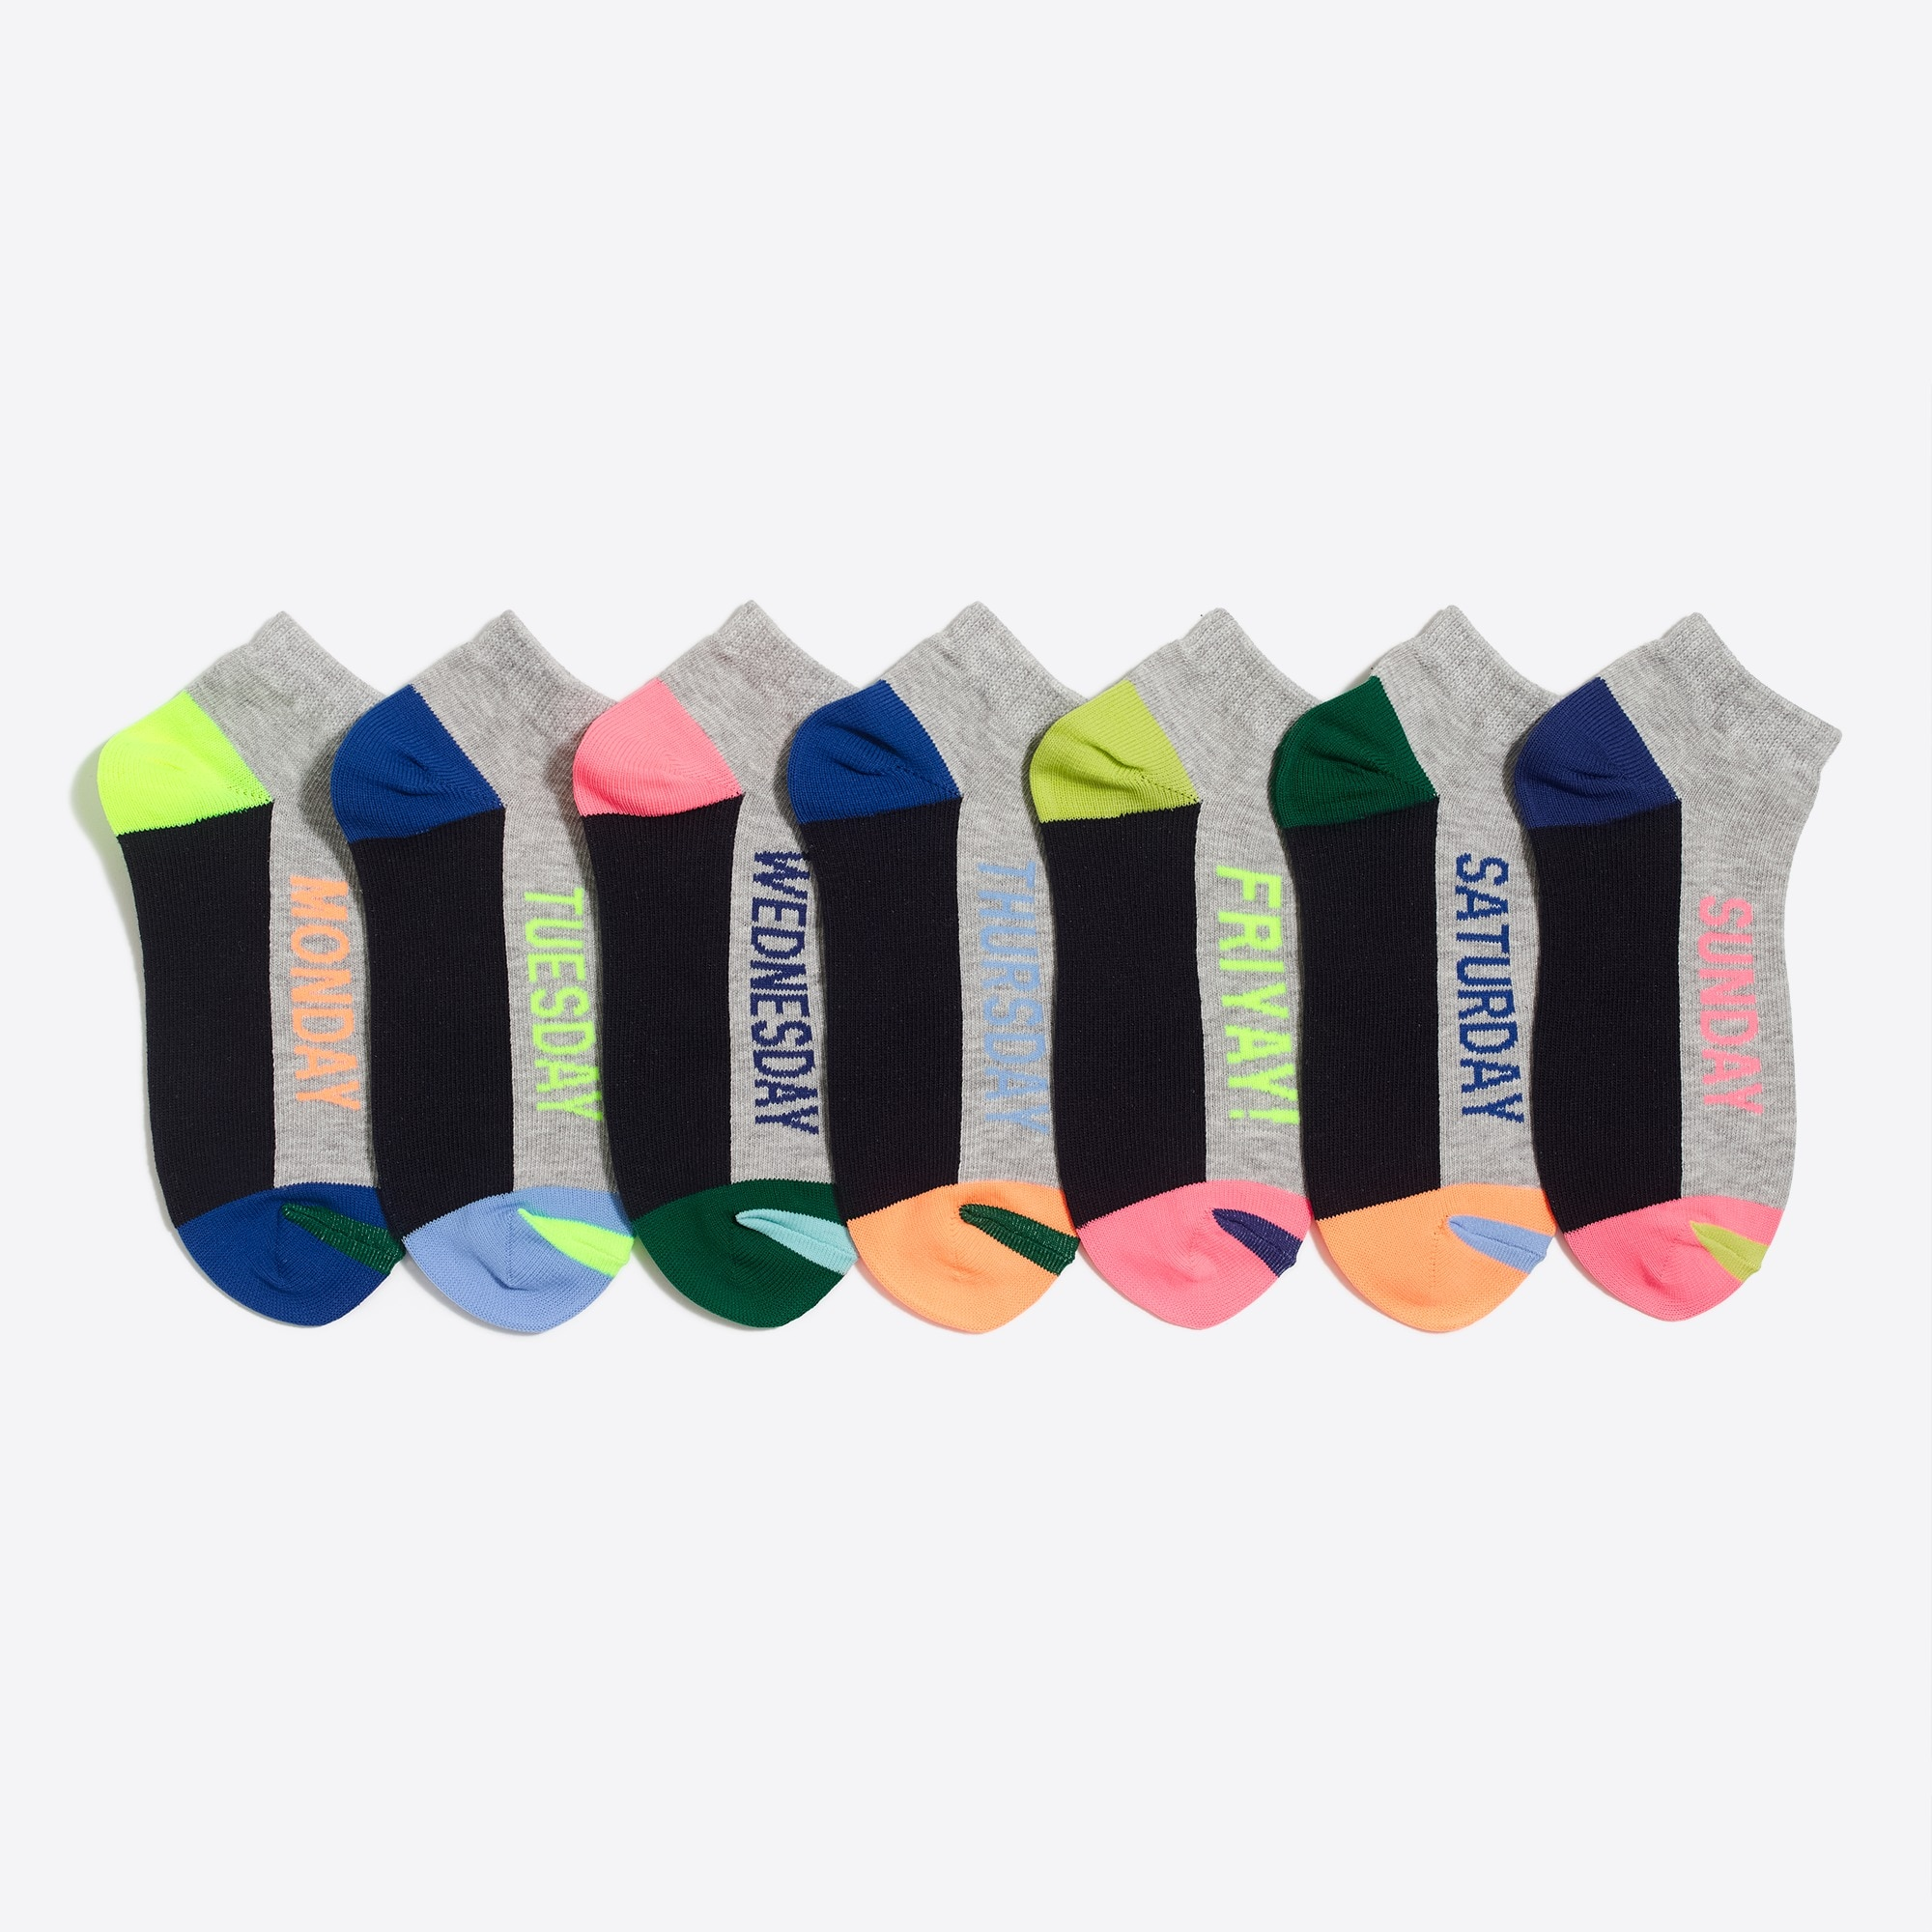 Image 1 for Girls' days-of-the-week socks three-pack